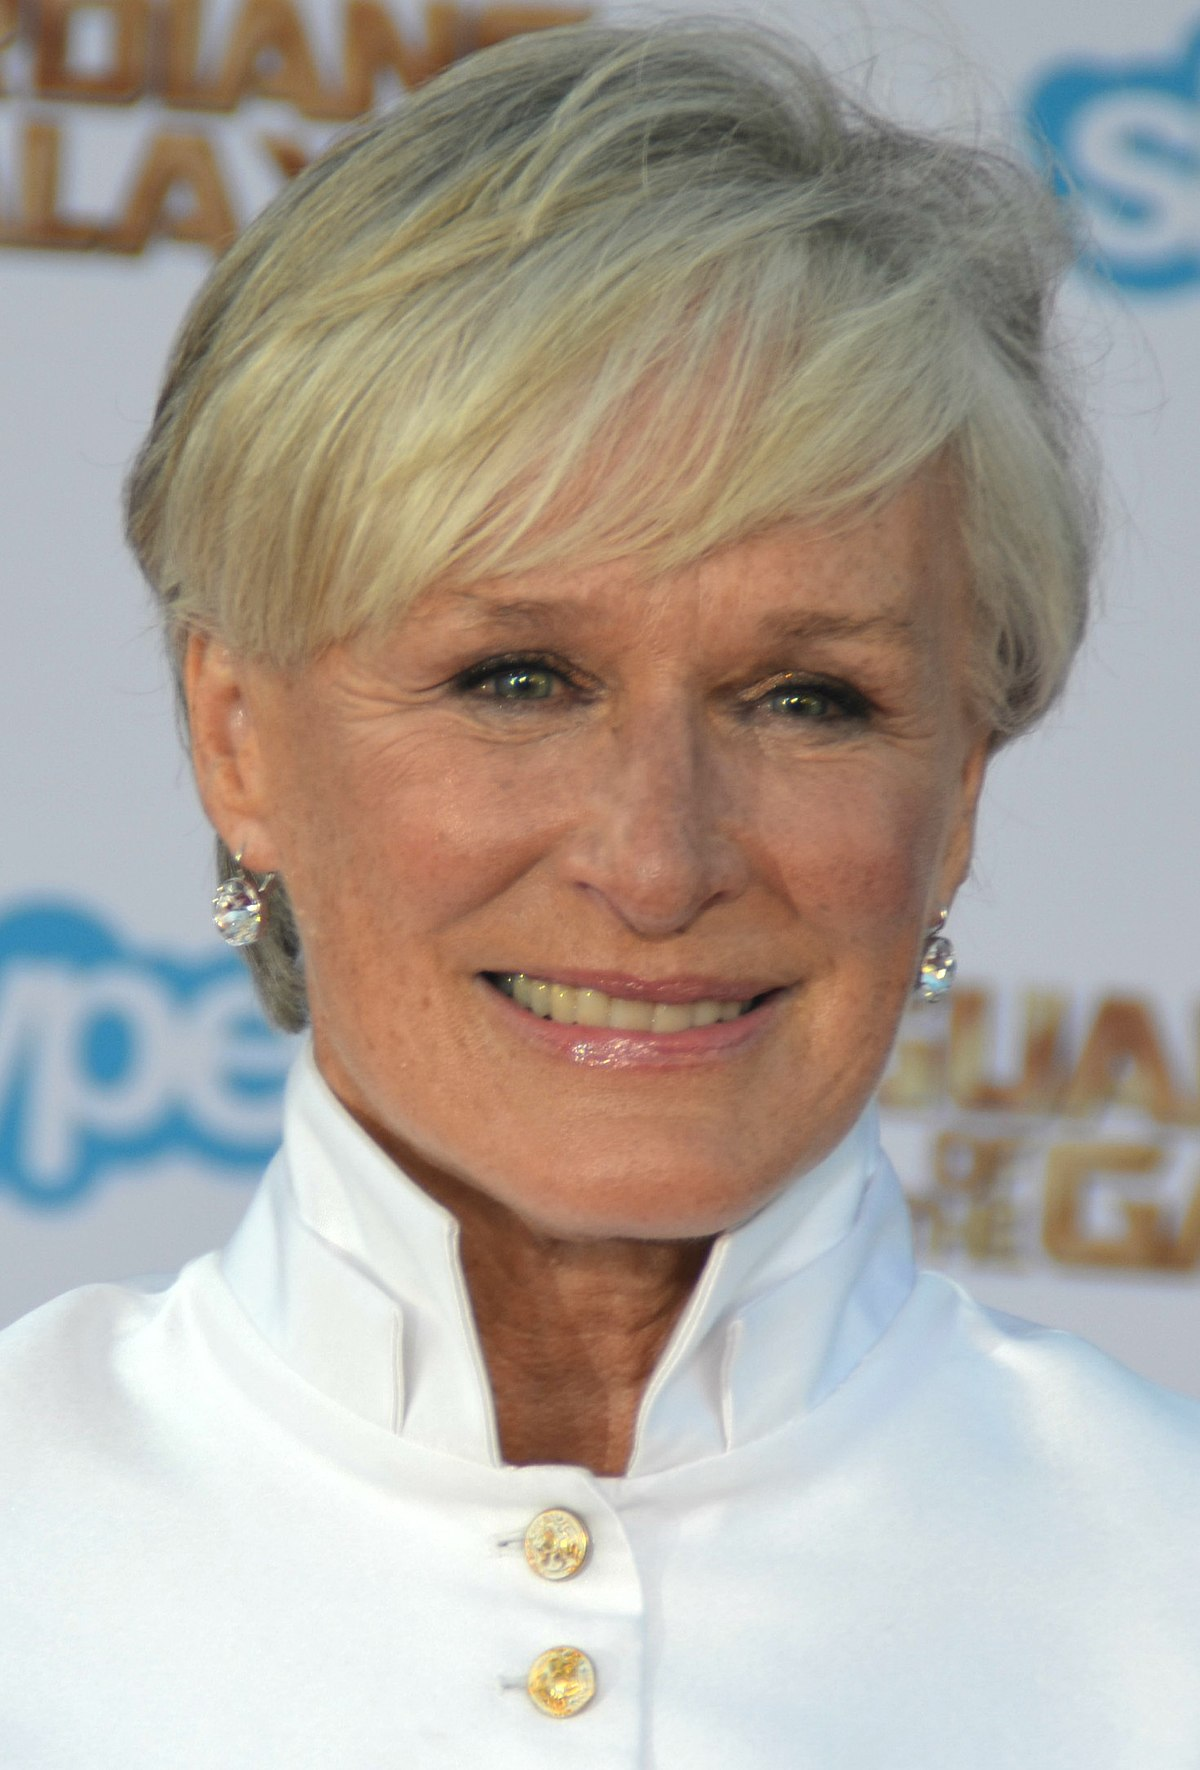 Glenn Close - Wikipedia, la enciclopedia libre